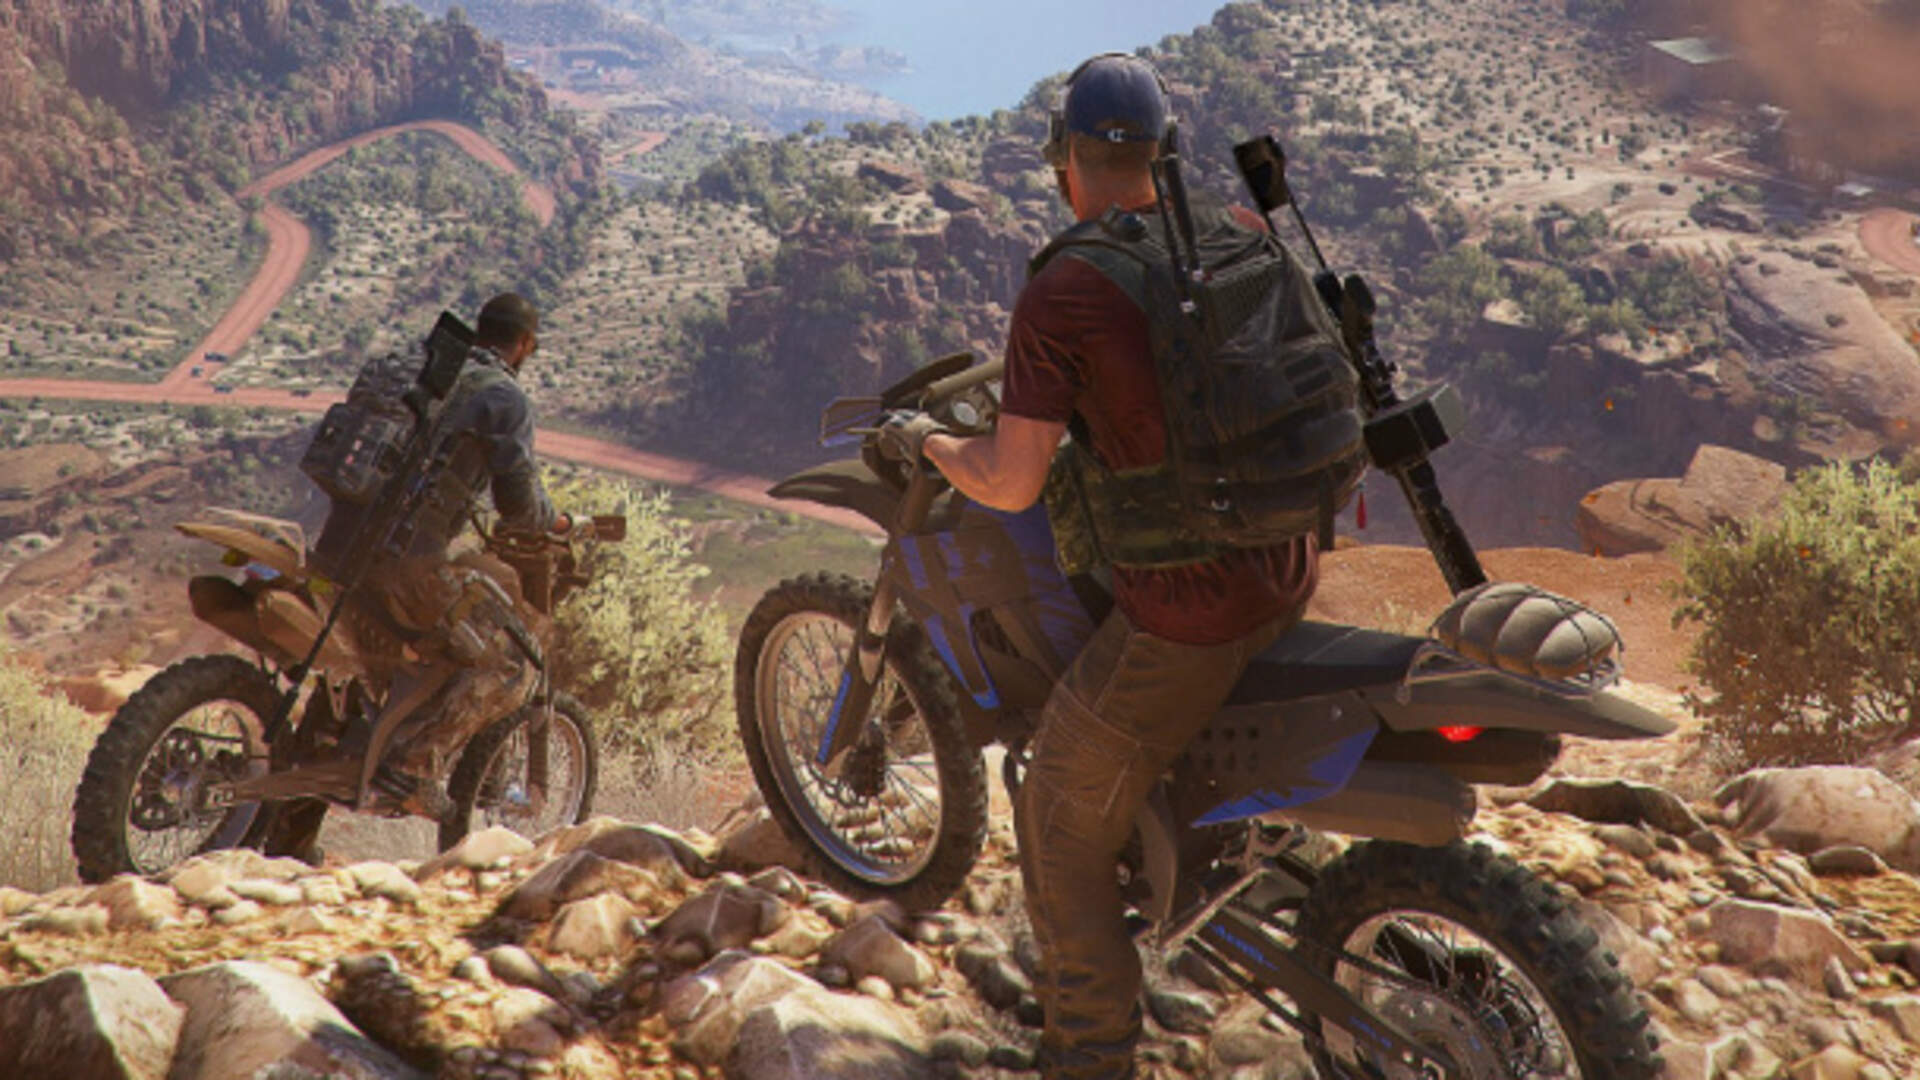 Ghost Recon Wildlands Starts An International Incident With Bolivia